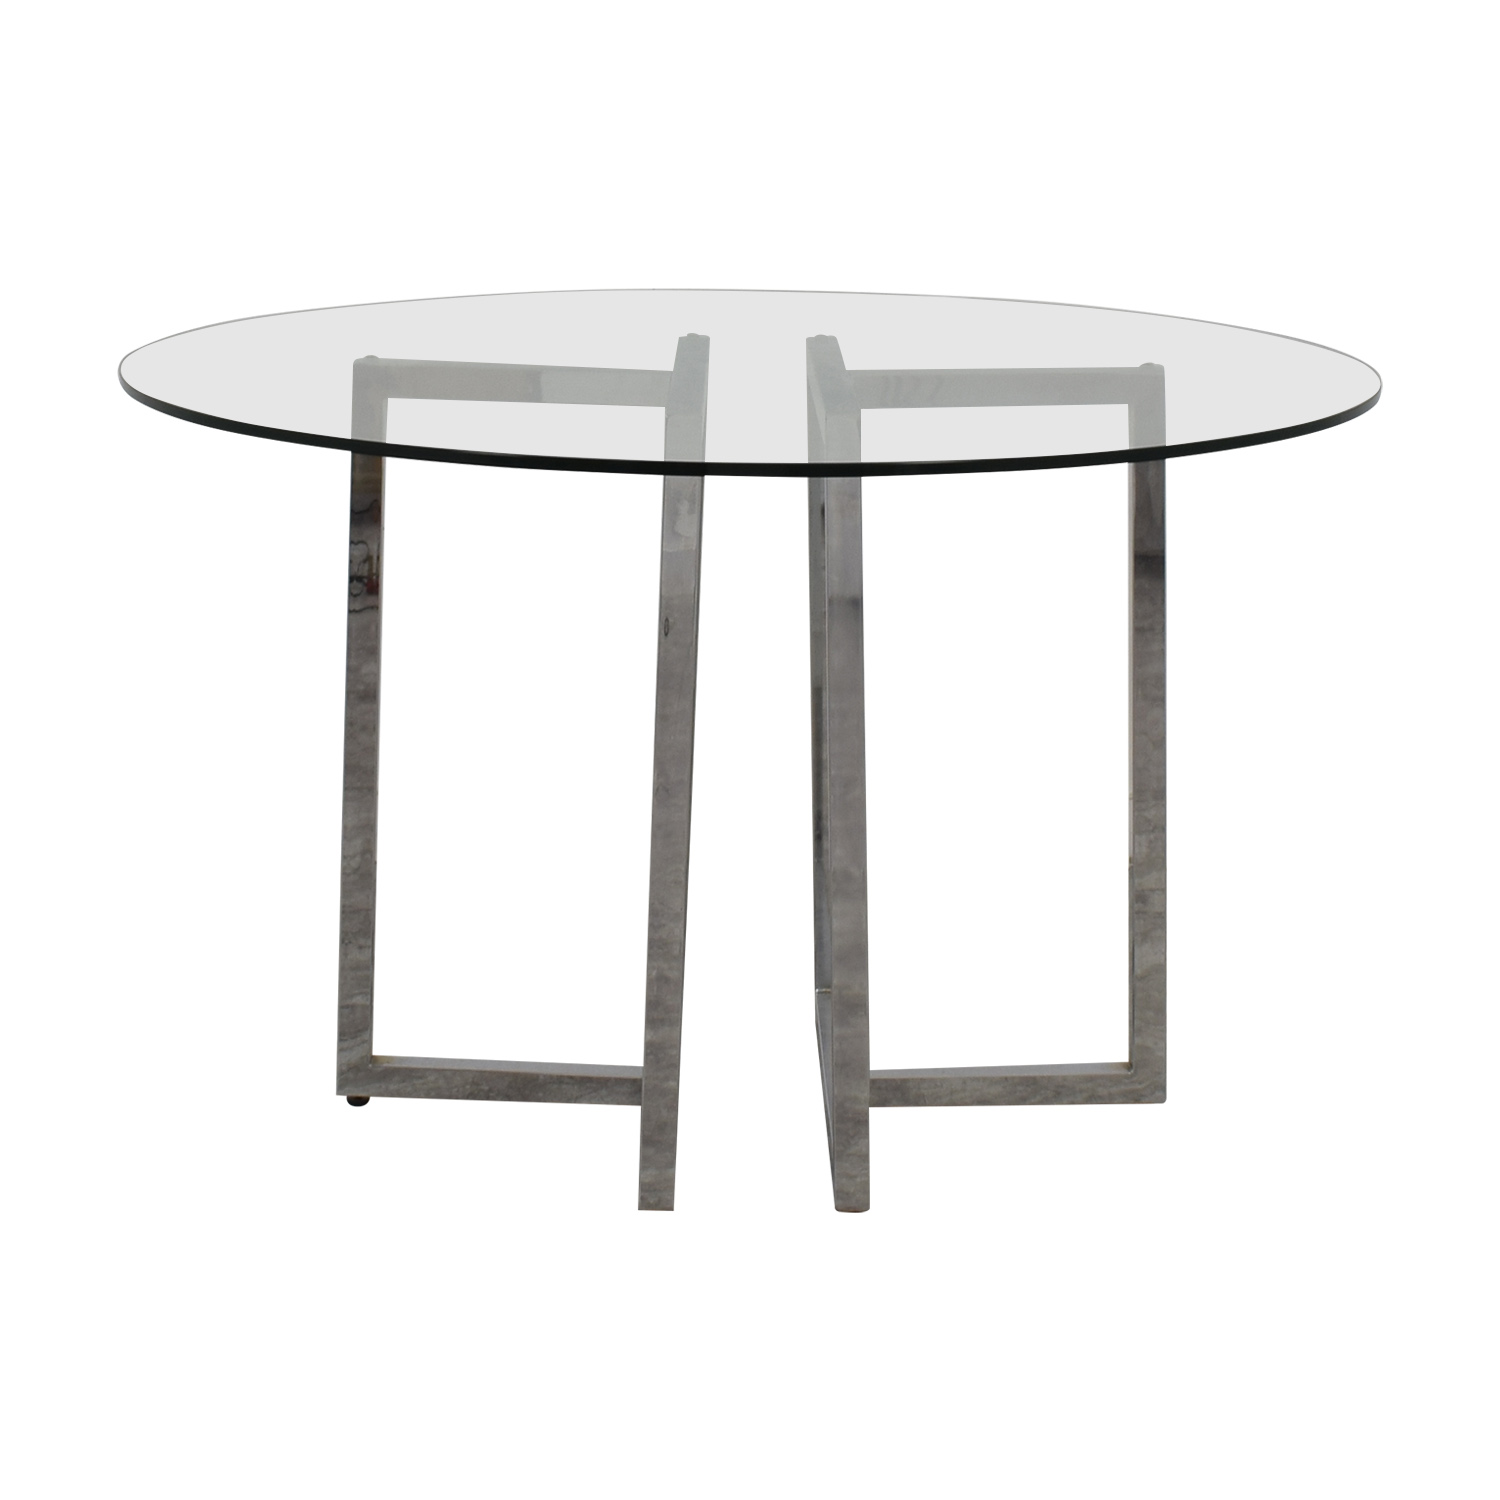 Admirable 64 Off Cb2 Cb2 Silverado Glass Round Dining Table Tables Caraccident5 Cool Chair Designs And Ideas Caraccident5Info